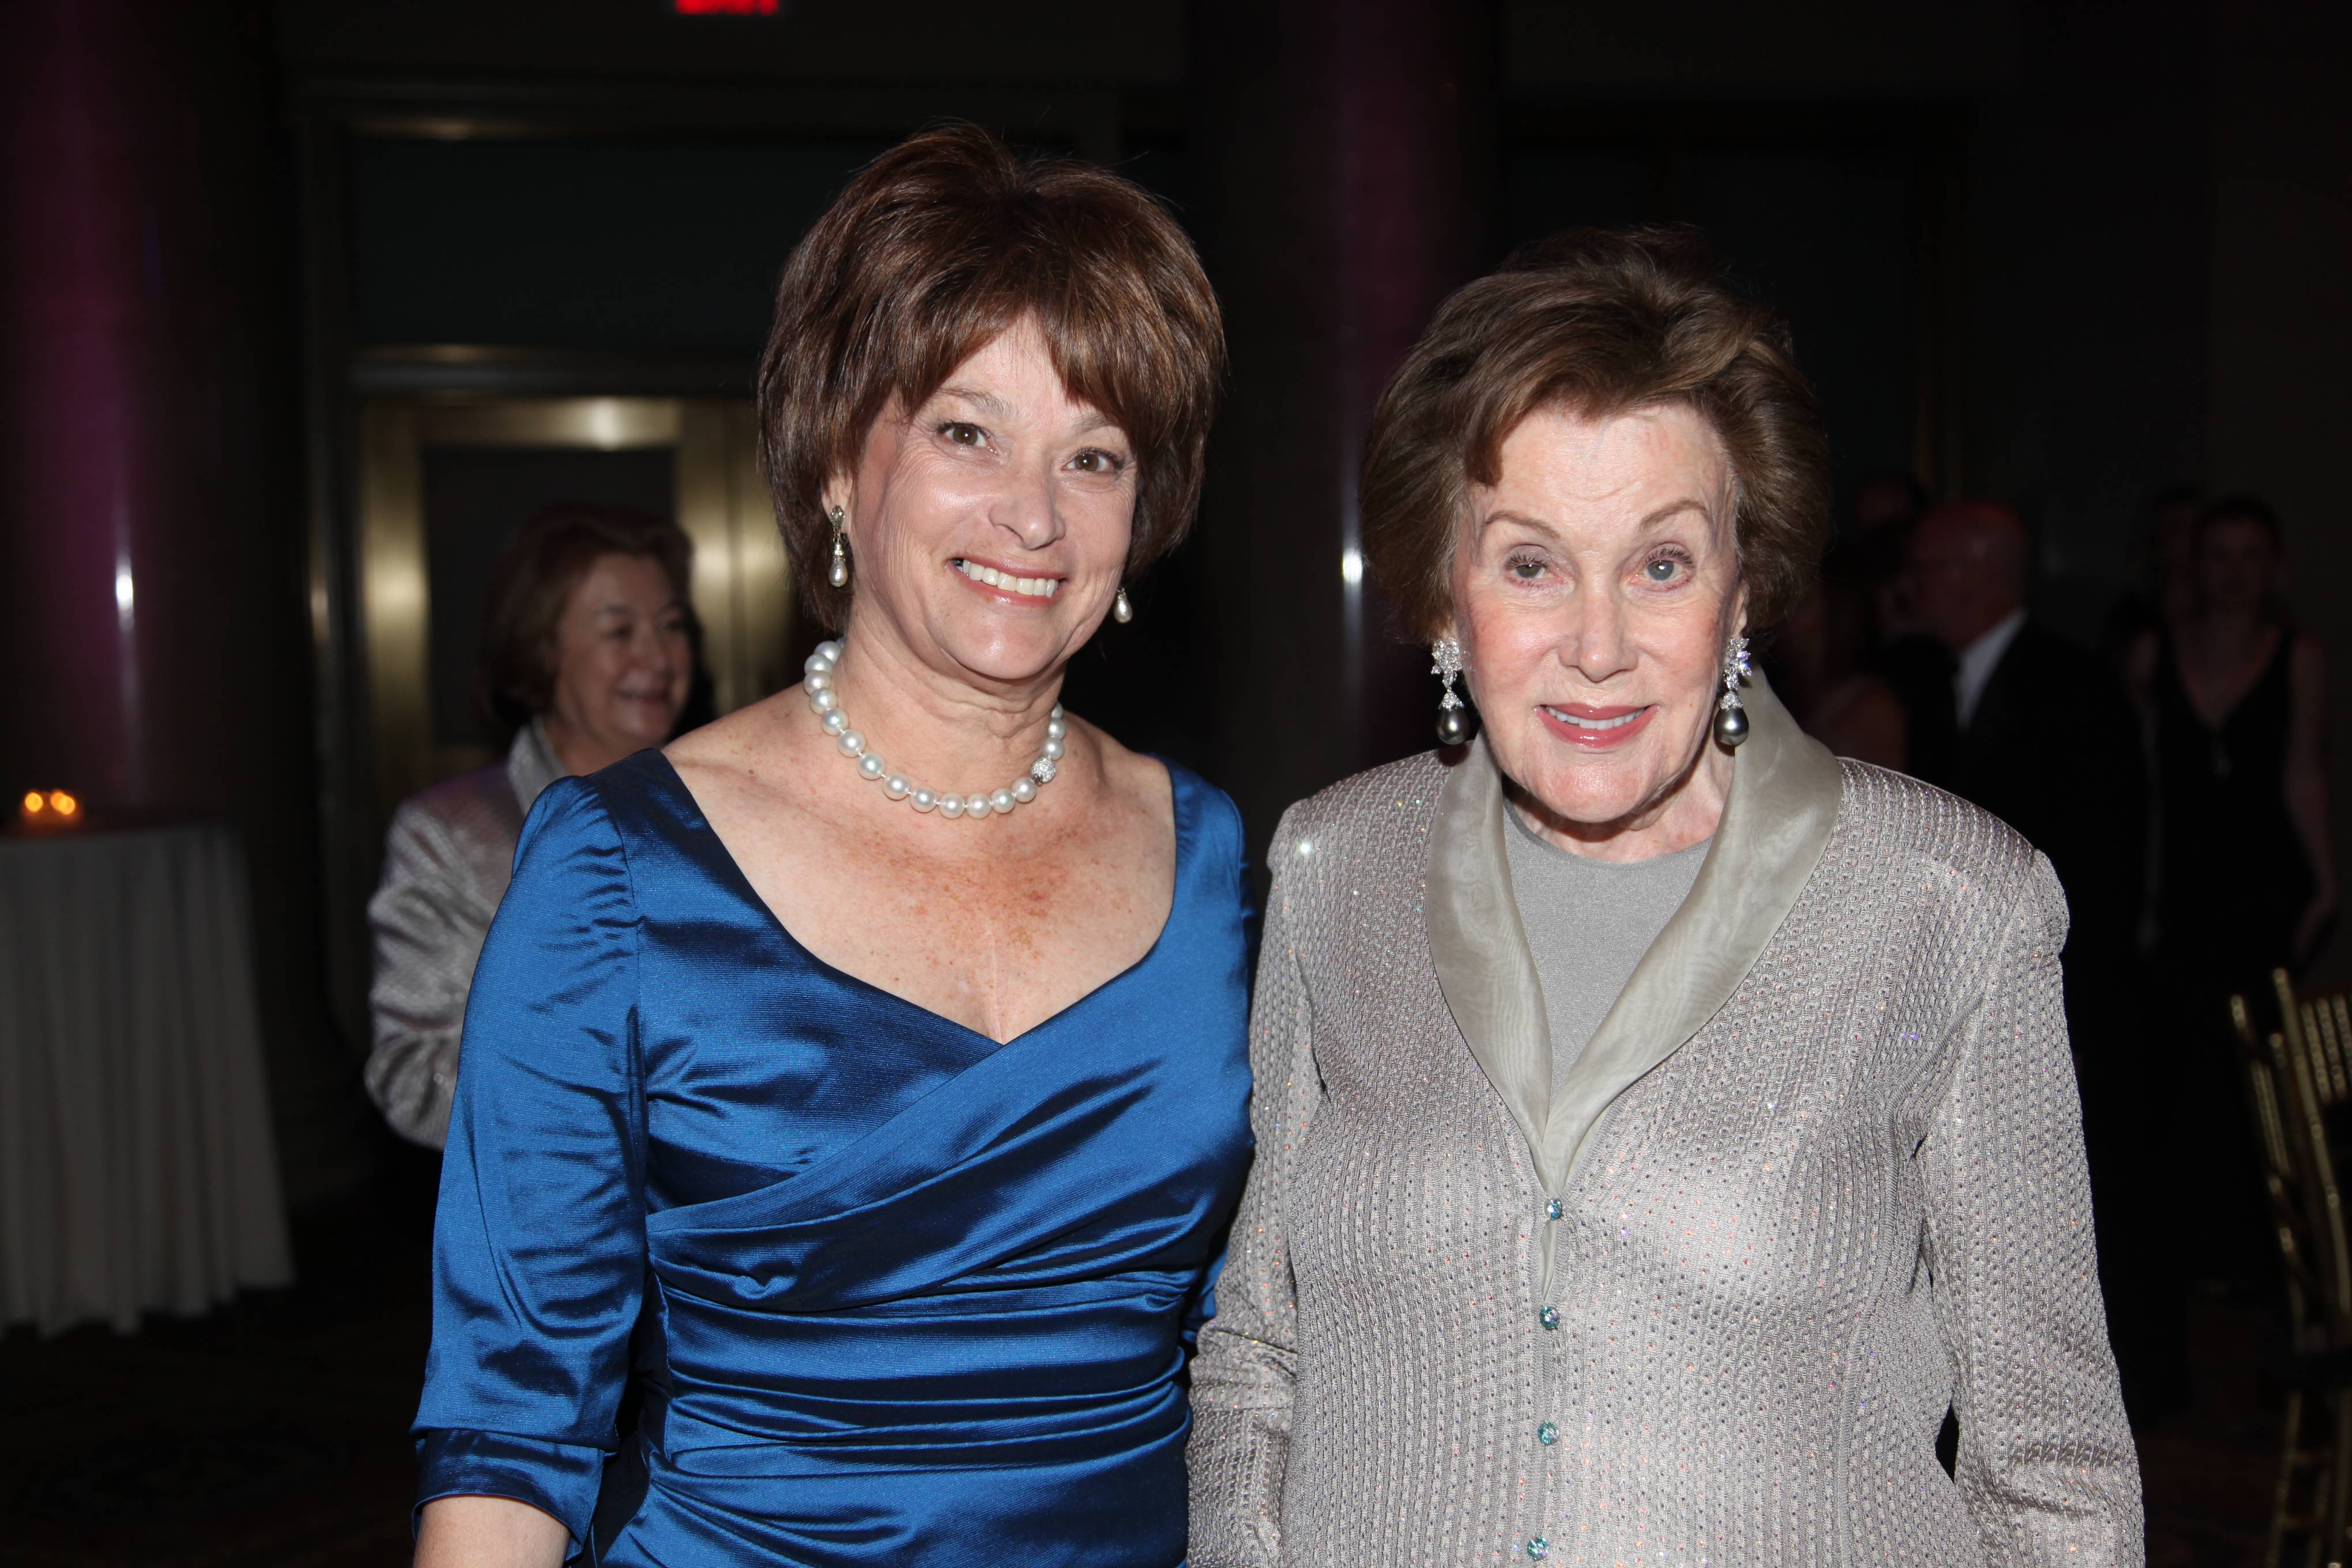 Betsy Karel, daughter, with mother and honoree Helen L Kimmel